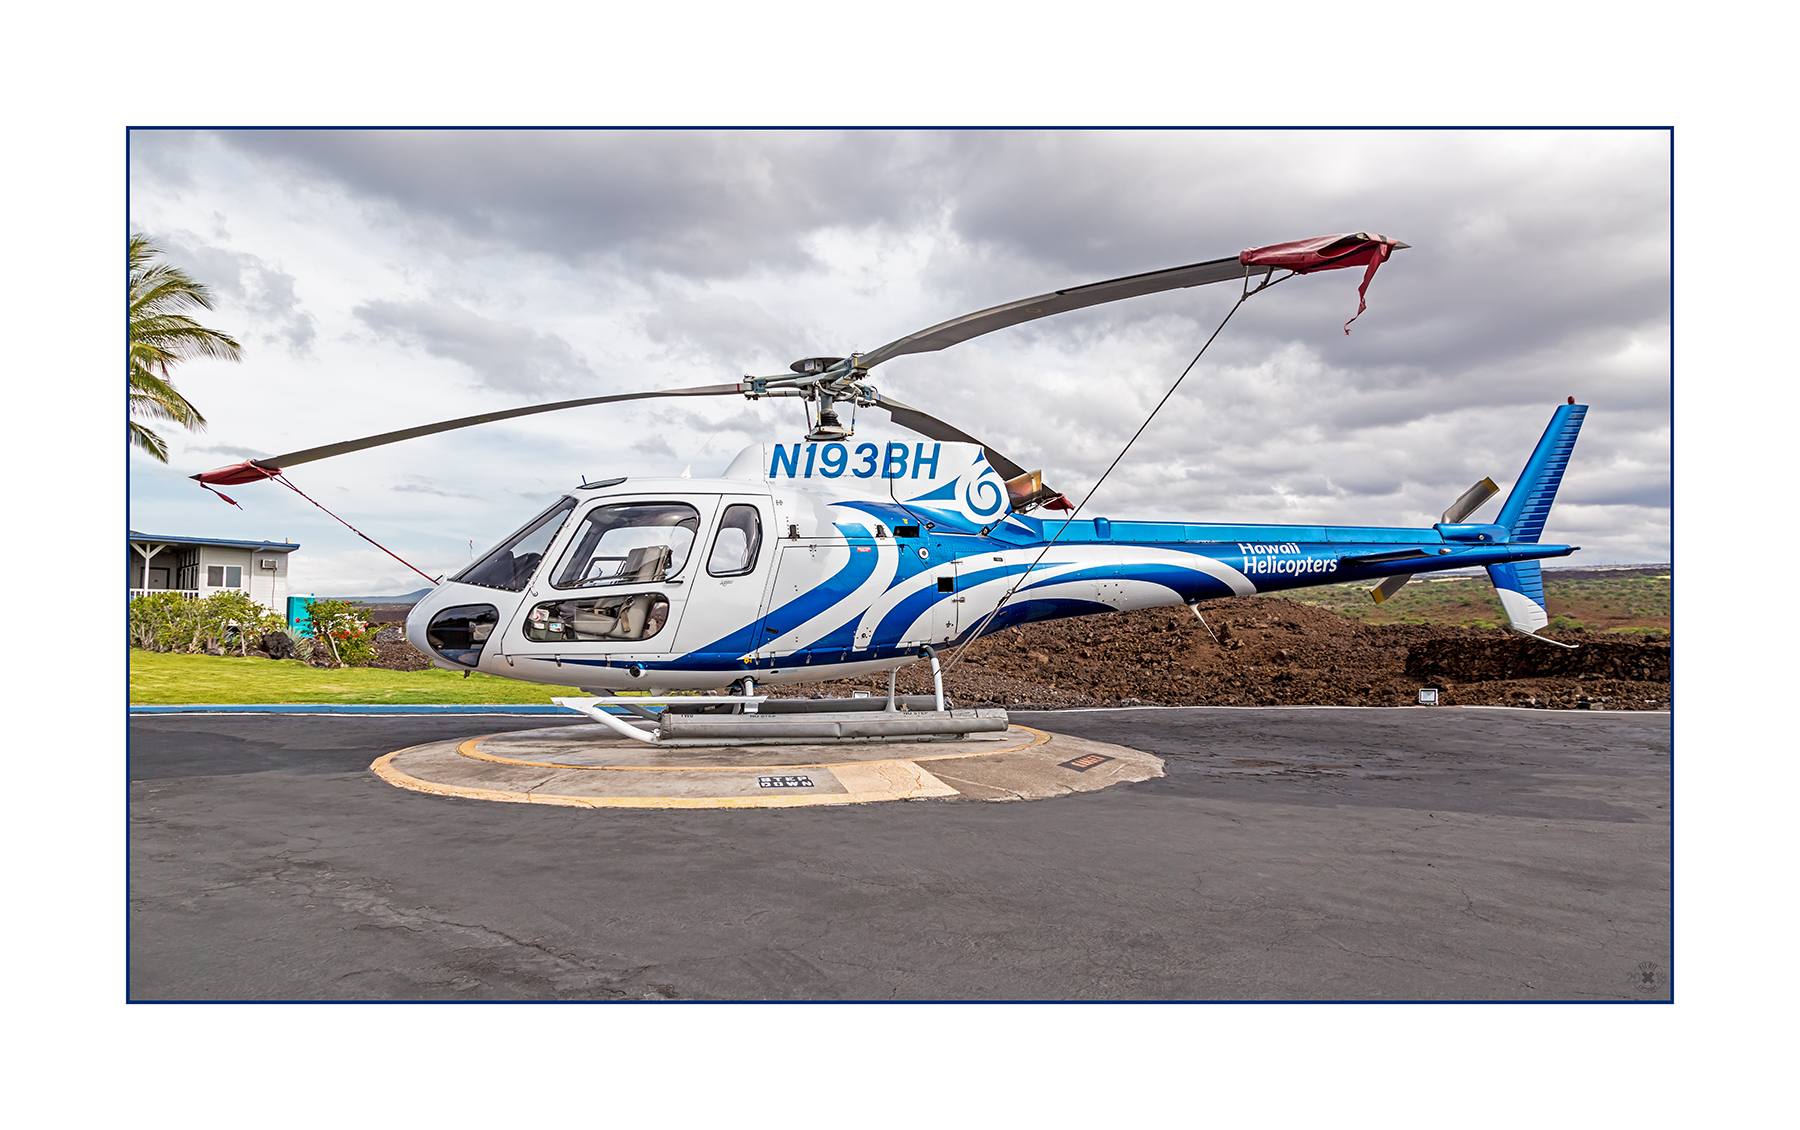 Airbus AS350-B2 A-Star N193BH Hawaii Helicopters am Waikoloa Heliport